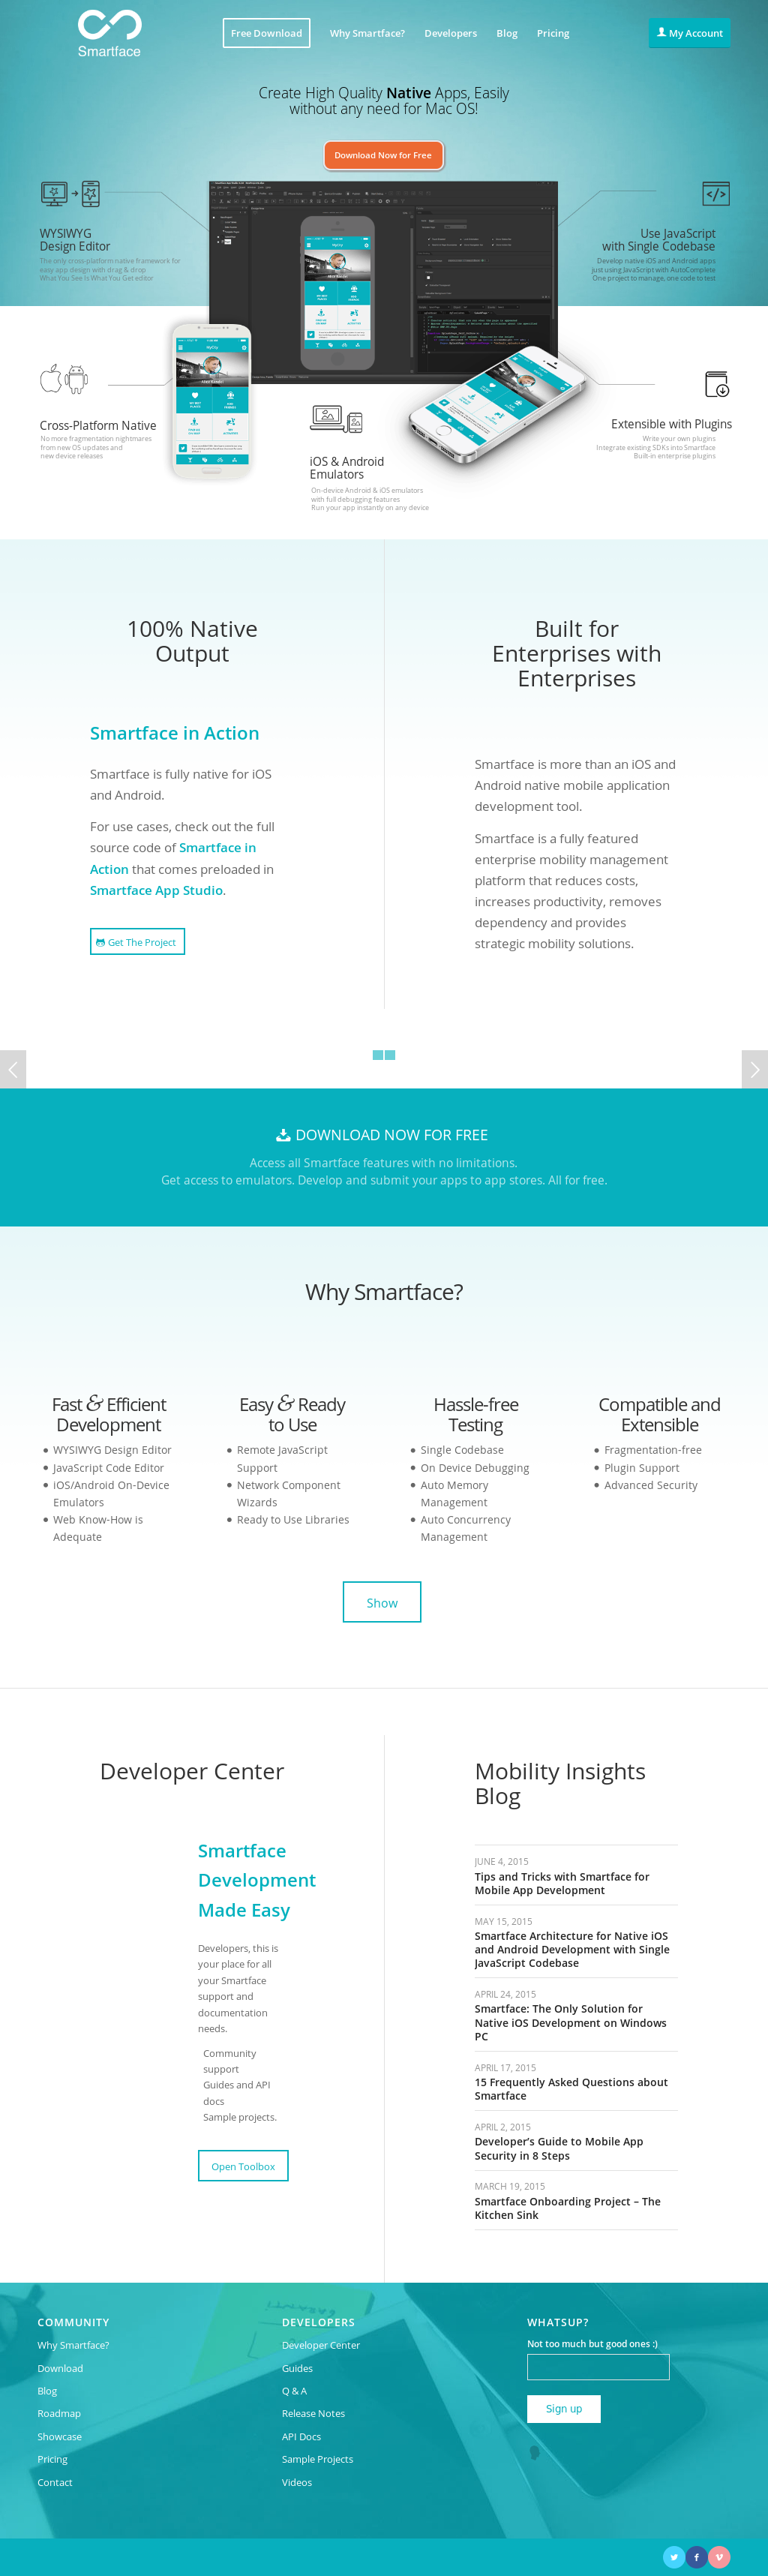 Smartface Competitors, Revenue and Employees - Owler Company